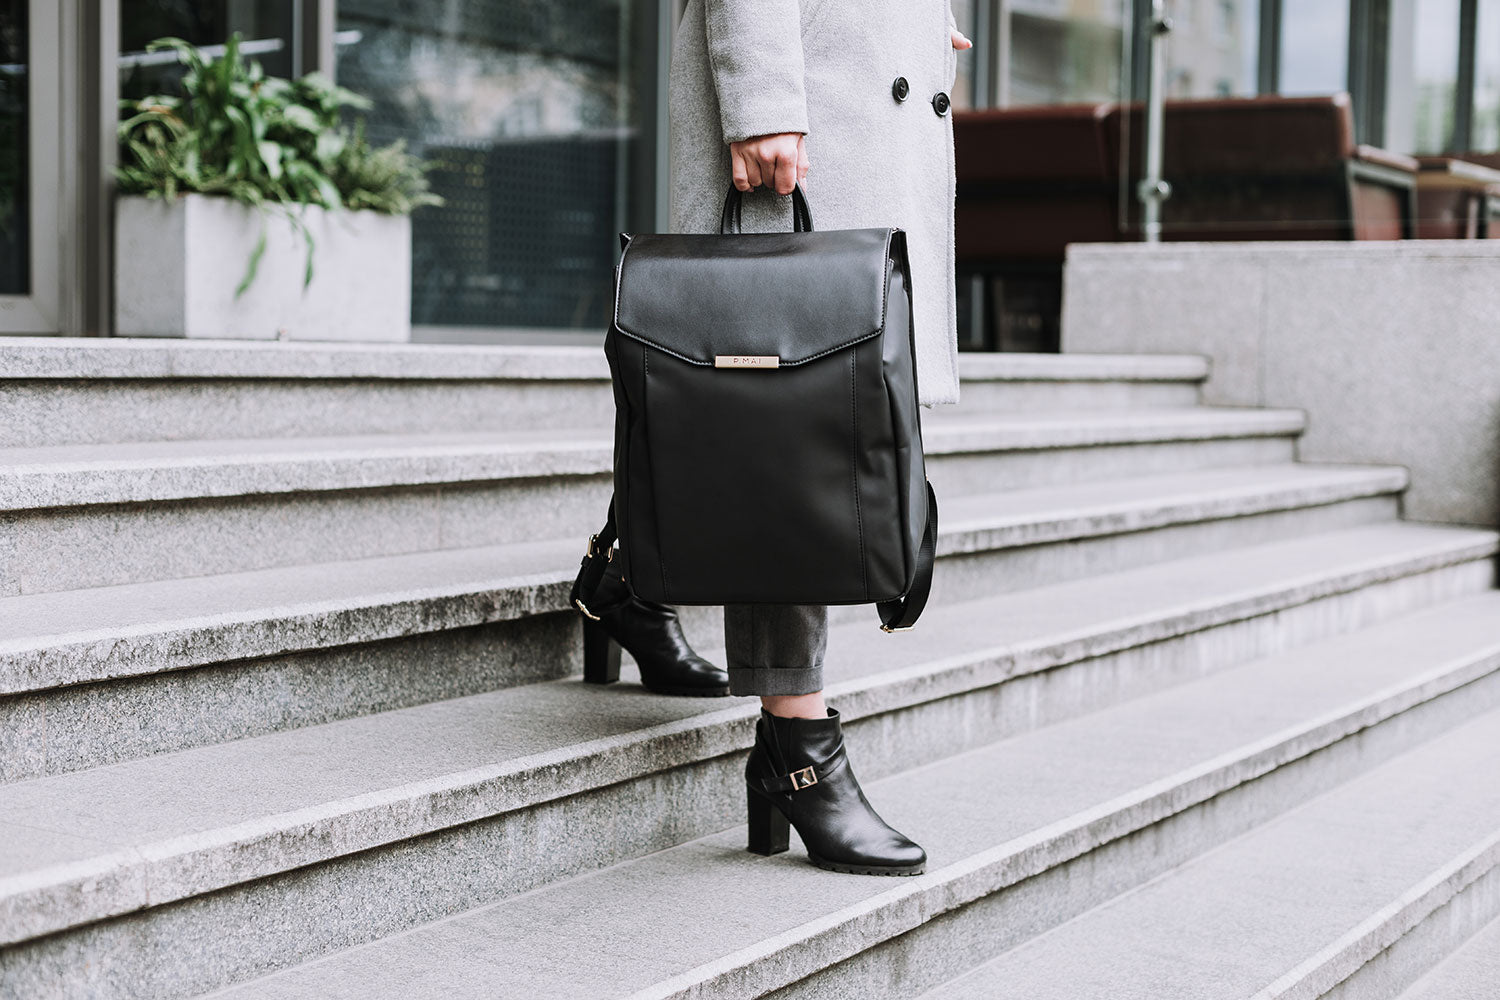 P.MAI Astrid vegan professional laptop leather backpack great for travel or work as purse and wallet